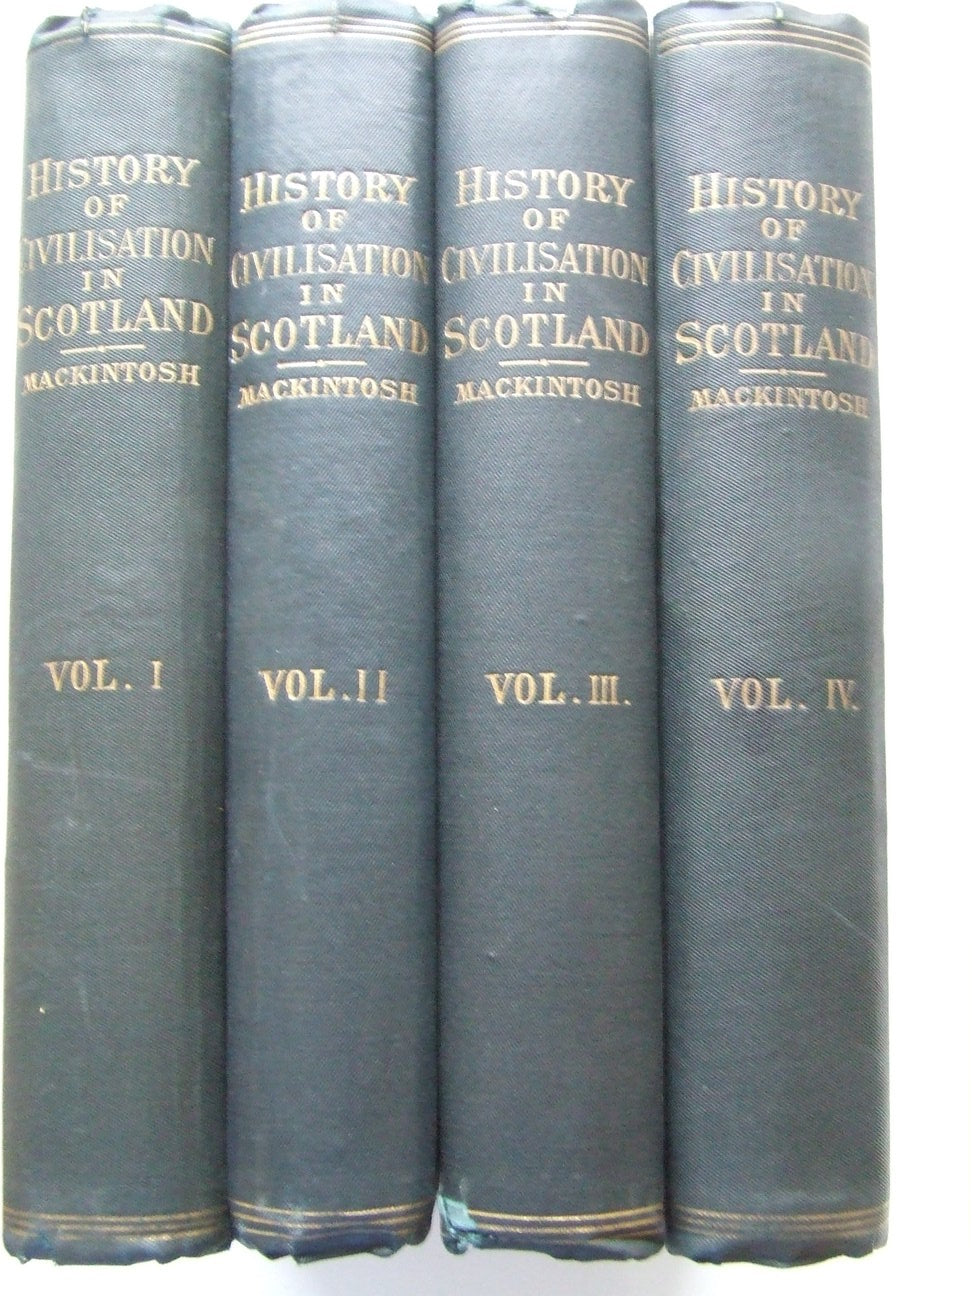 The History of Civilisation in Scotland